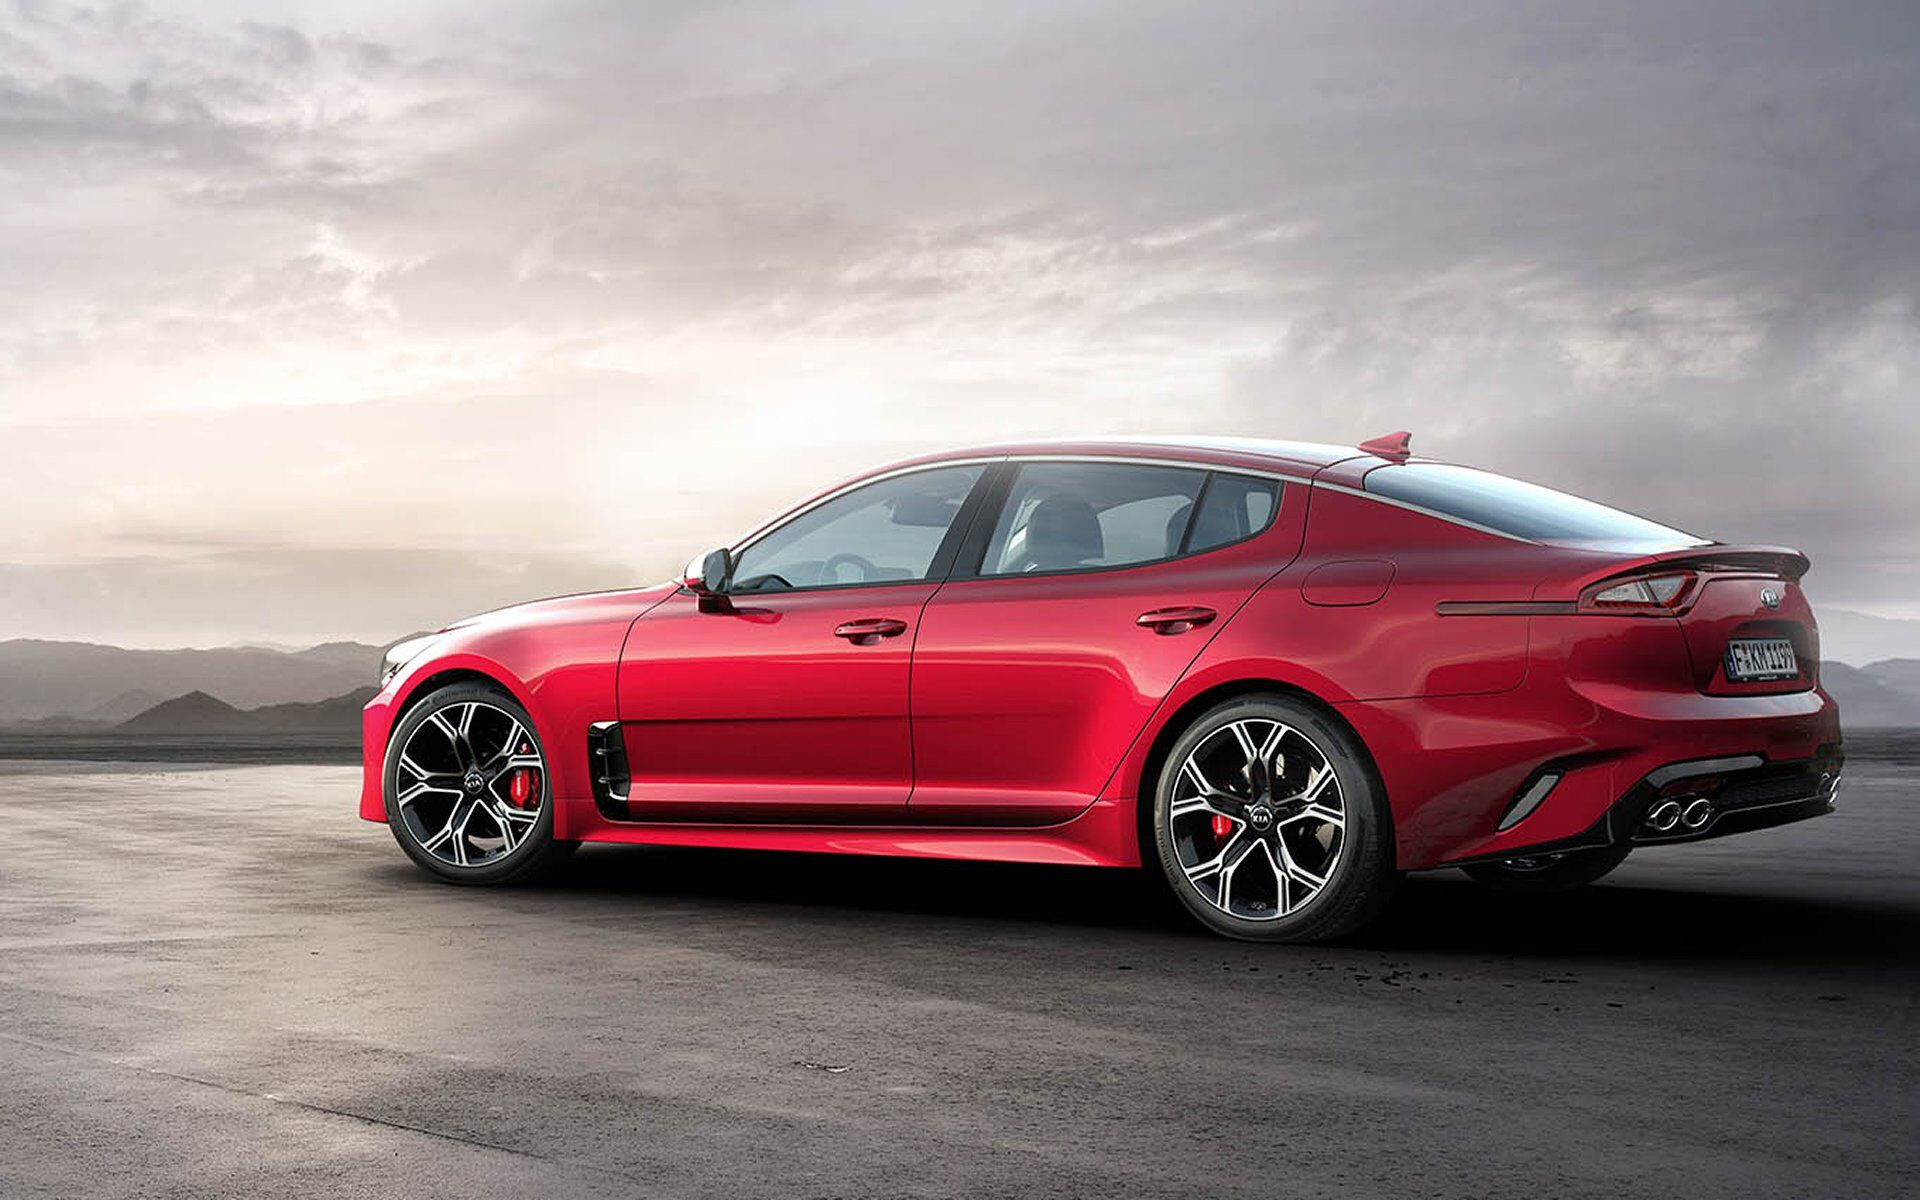 Prescott Valley AZ Kia Stinger